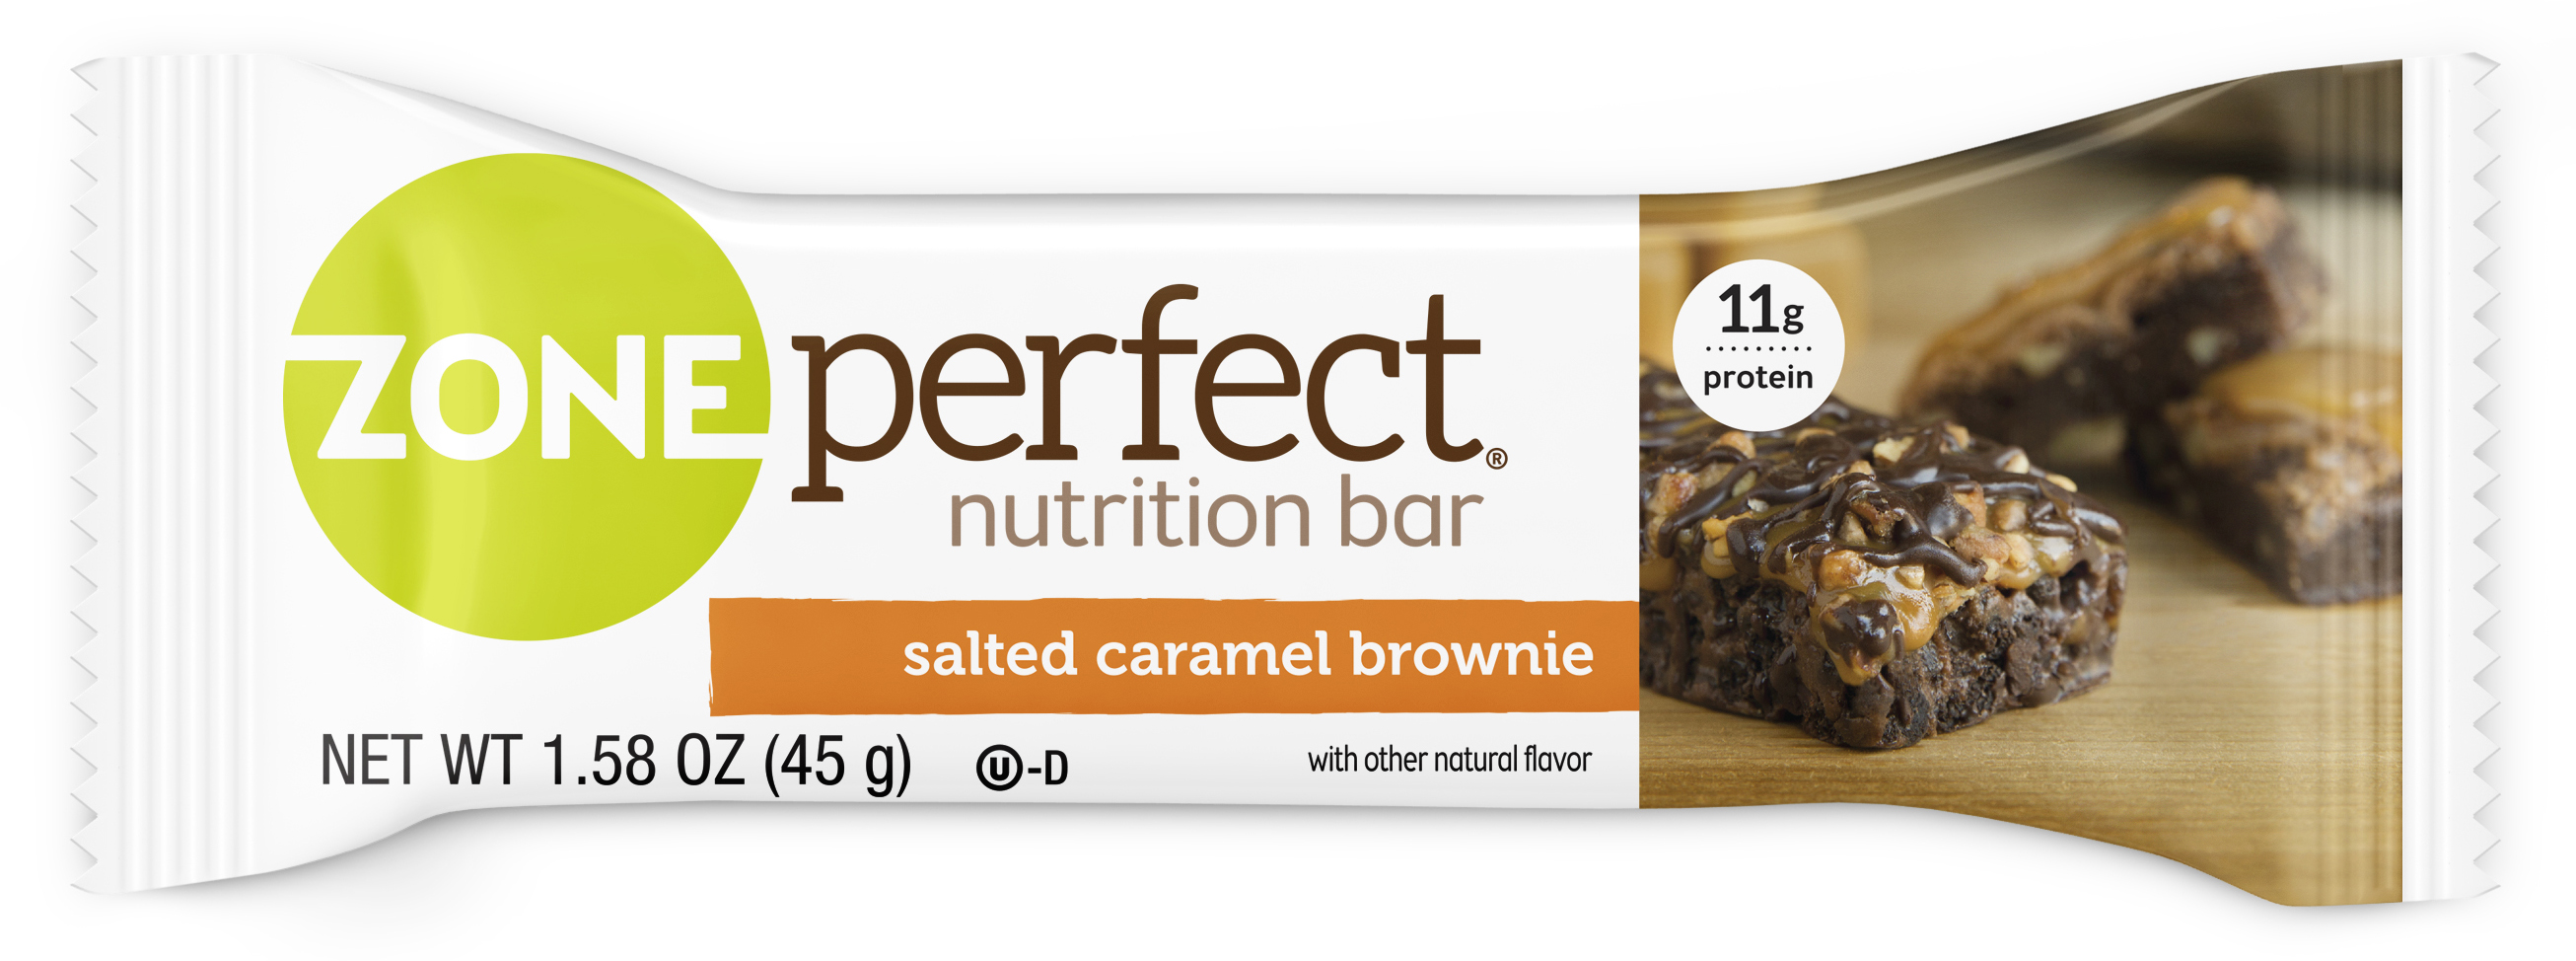 ZonePerfect Nutrition Bar, Salted Caramel Brownie, 11g Protein, 12 Ct by Abbott Laboratories,ABBN7